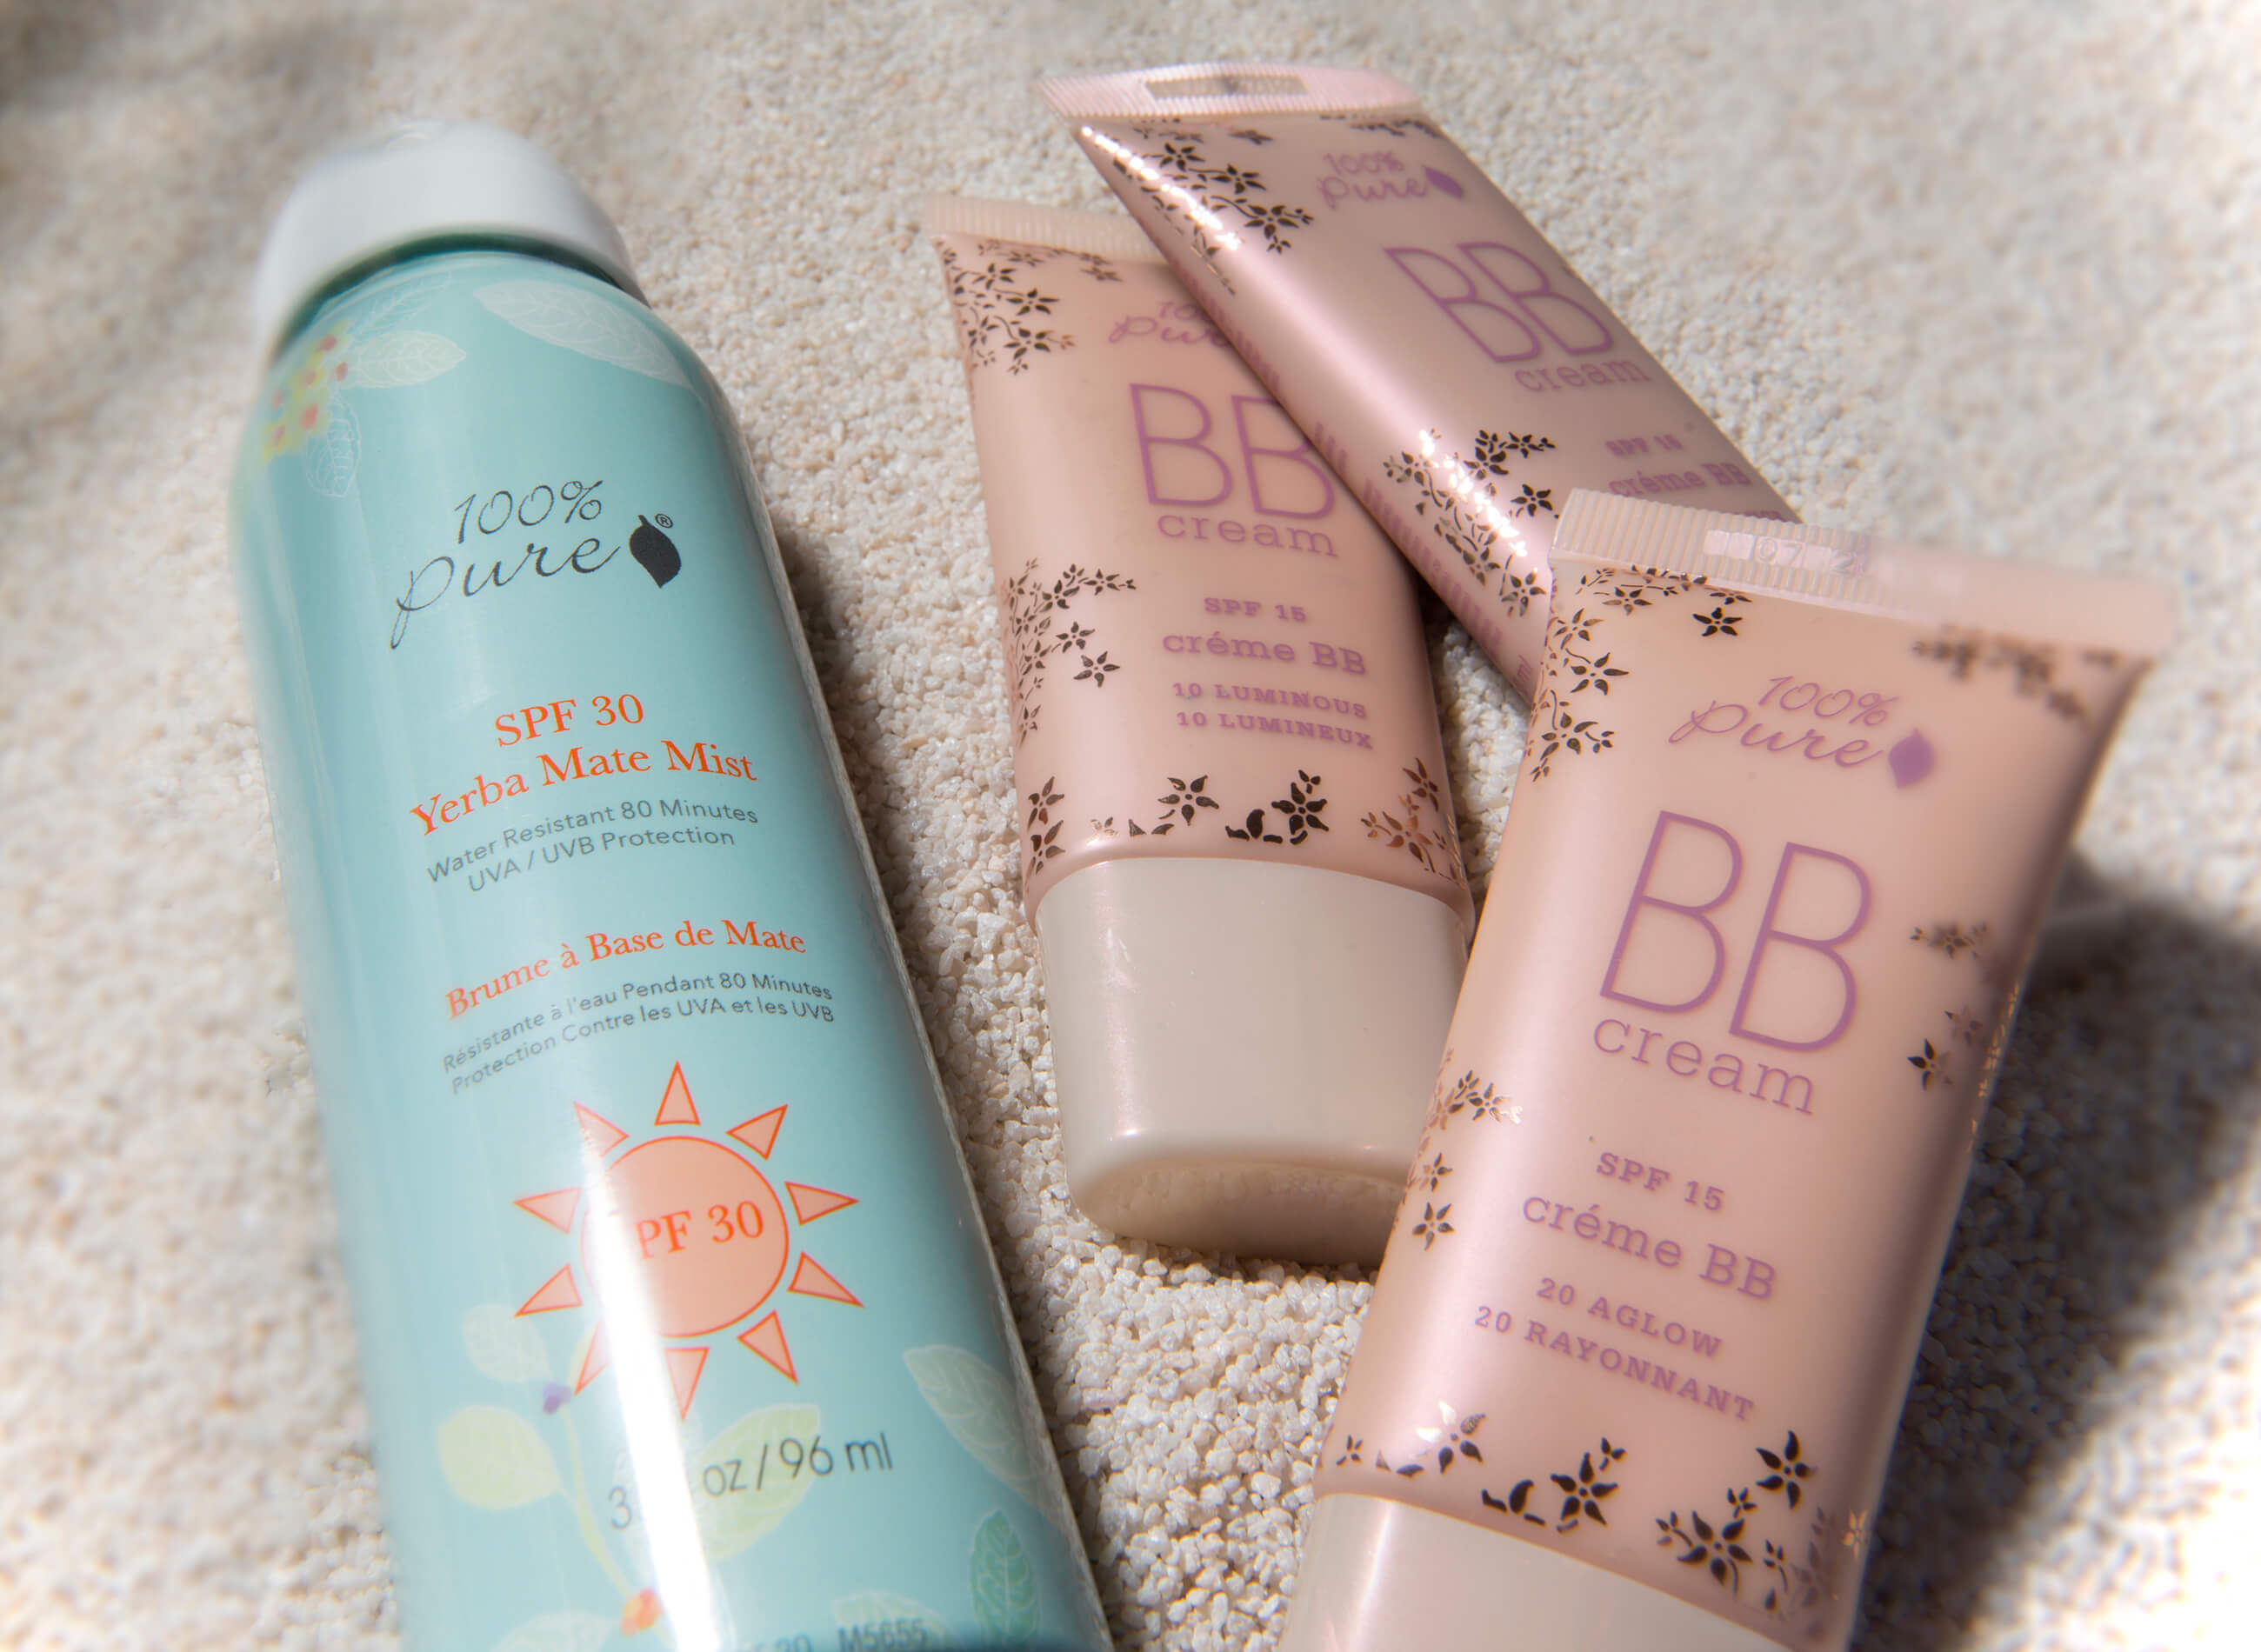 Yerba Mate Mist BB Cream